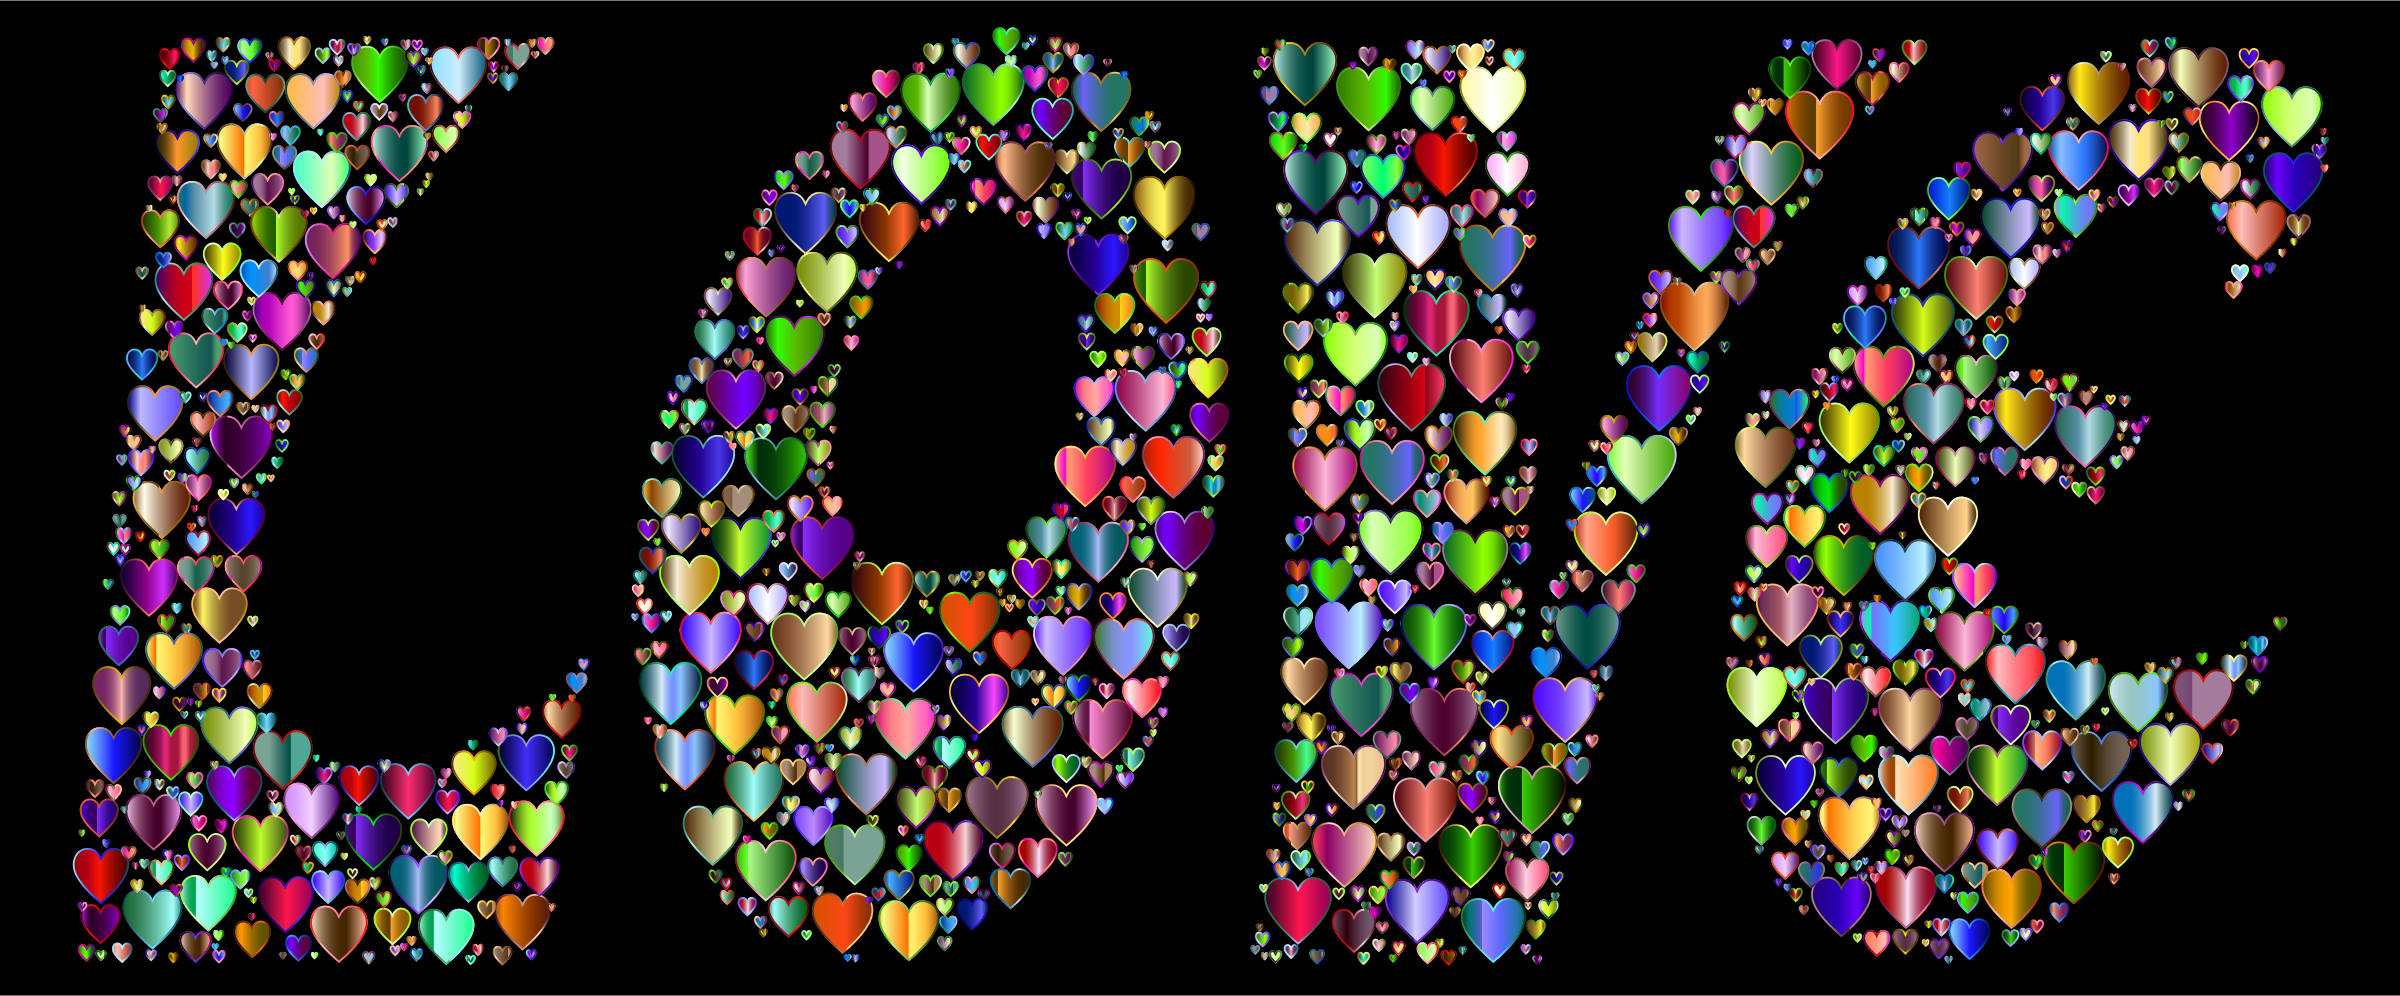 Prismatic Love Hearts Typography 4 Variation 2 by GDJ